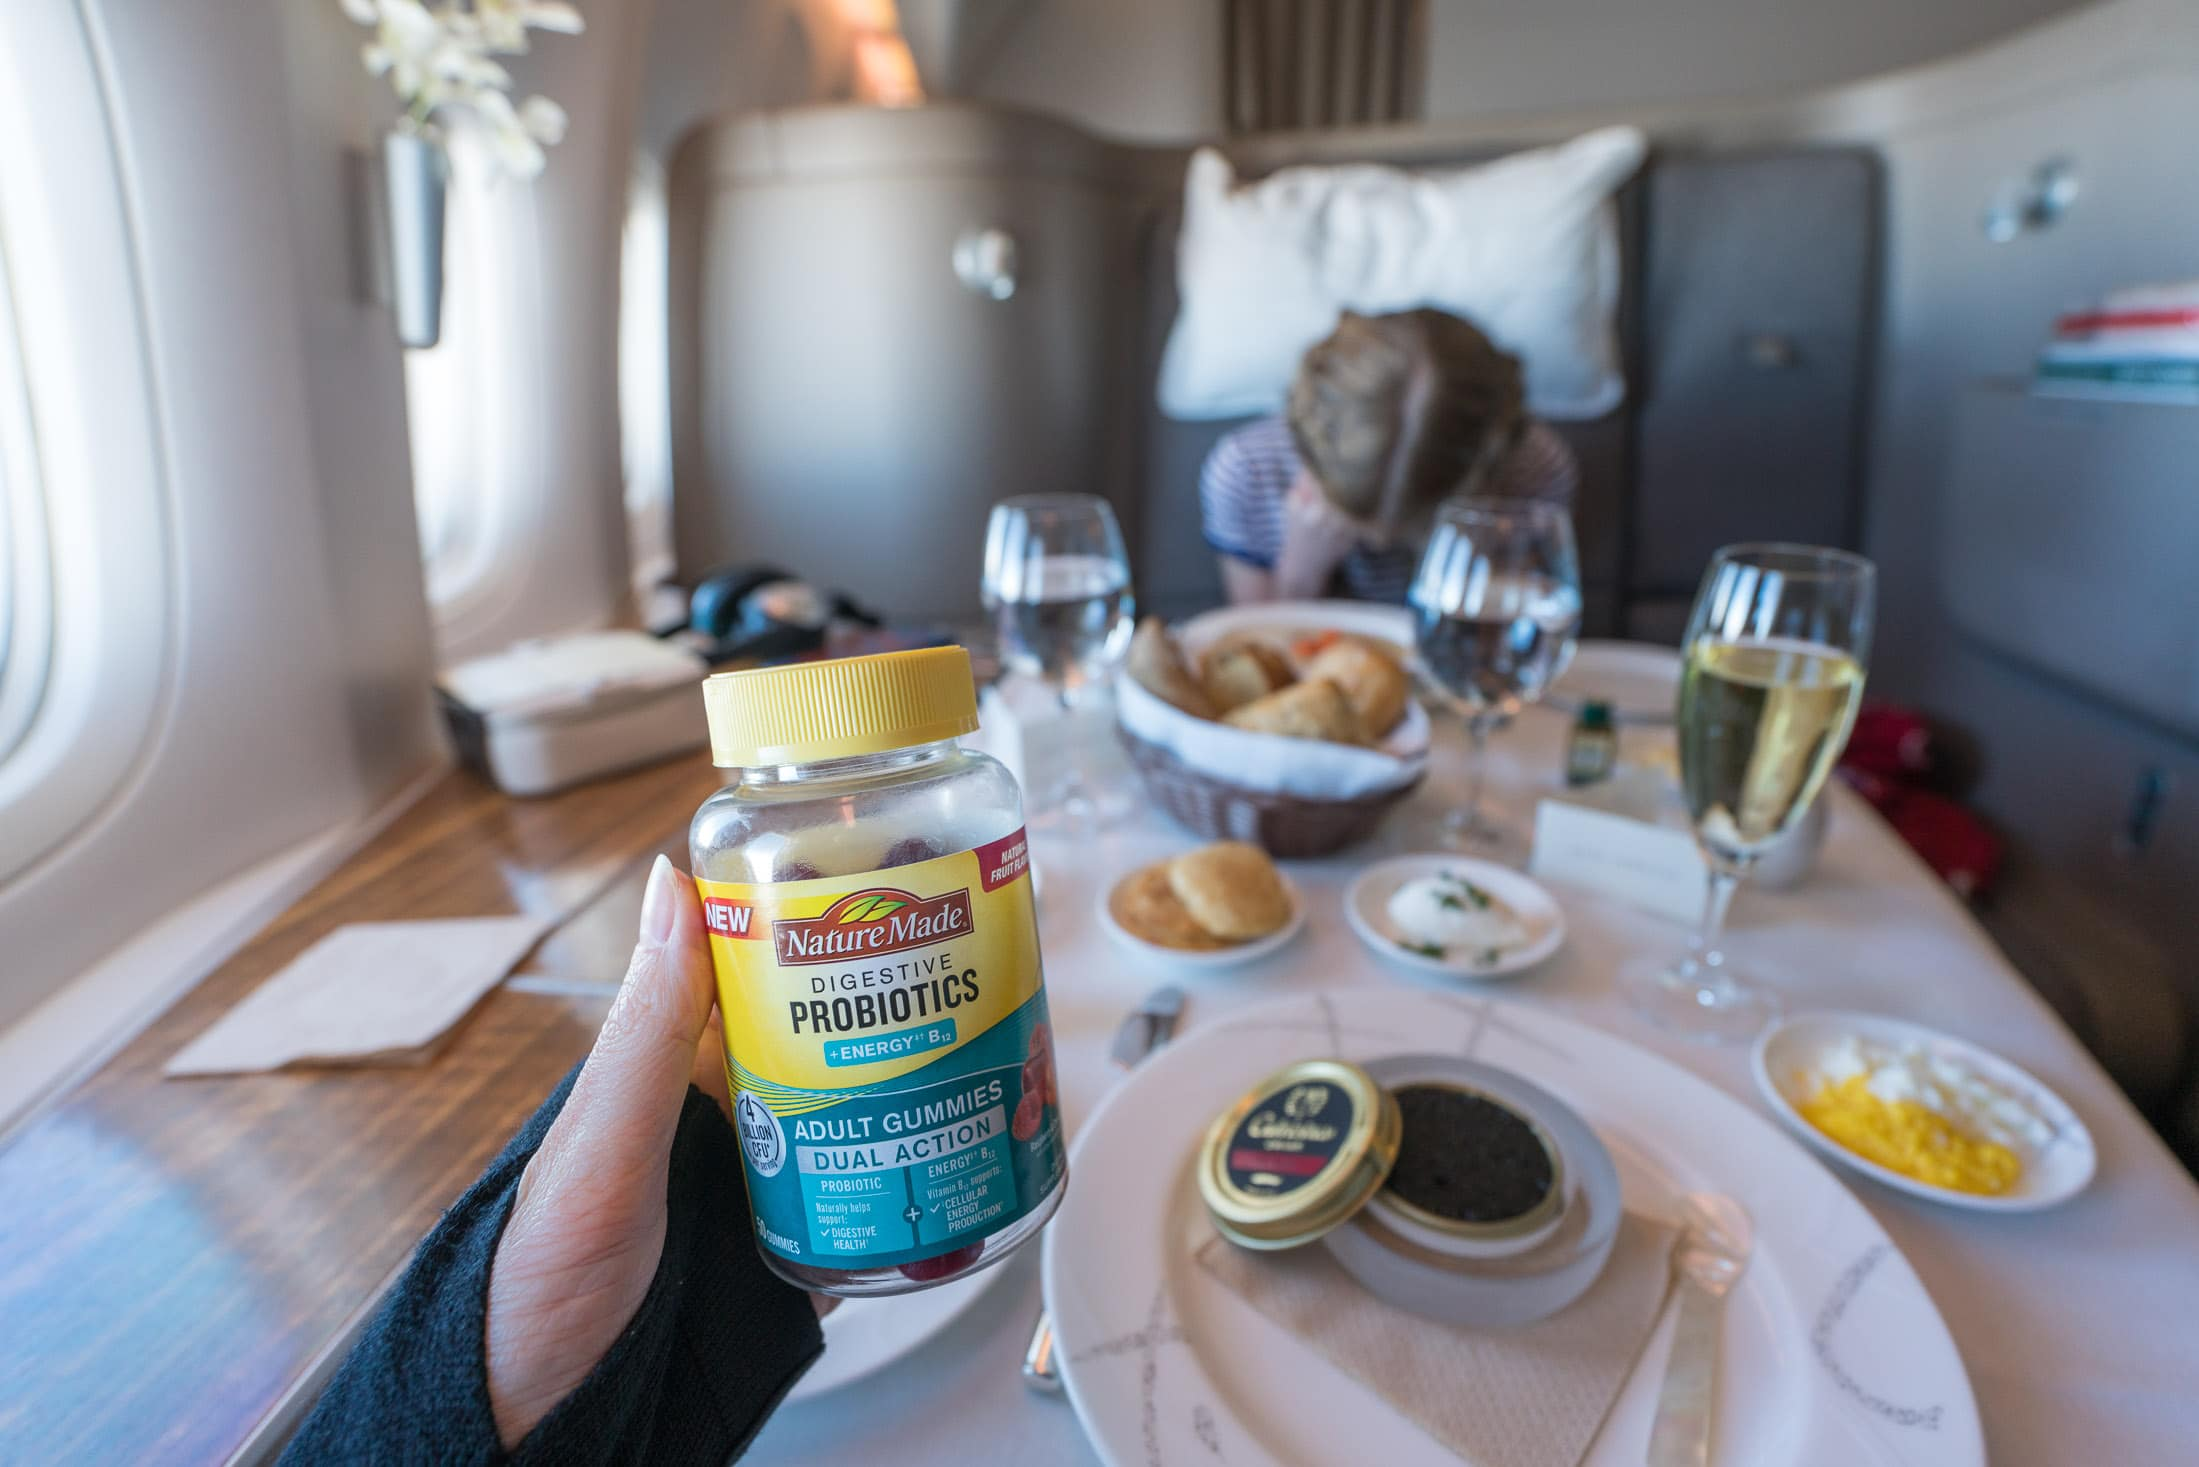 6 Easy Tips for How to Stay Healthy While Traveling - La